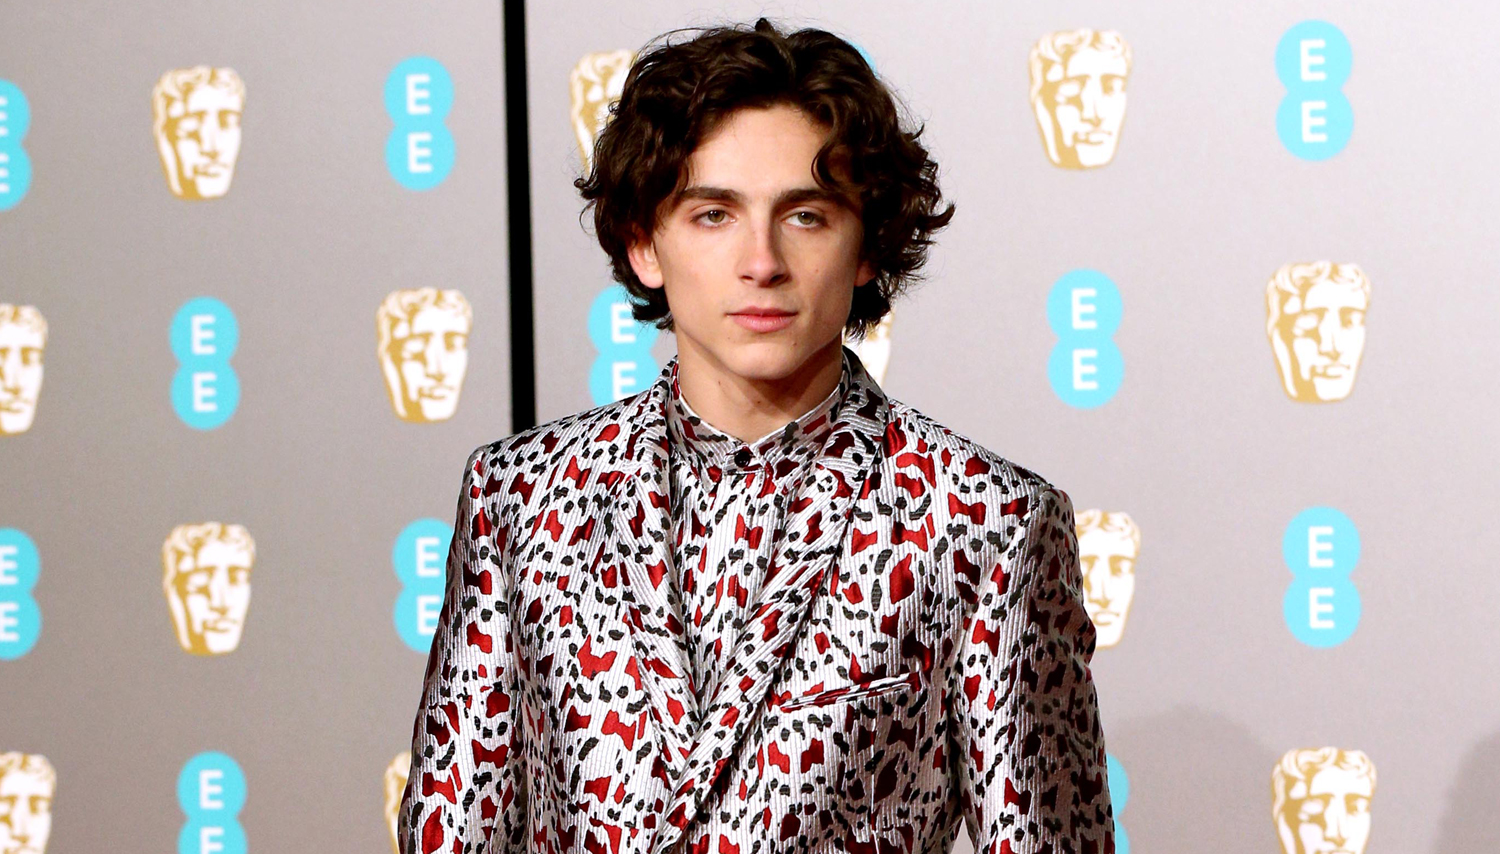 Baftas 2019: Timothee Chalamet Wears The Most Interesting Suit Of The